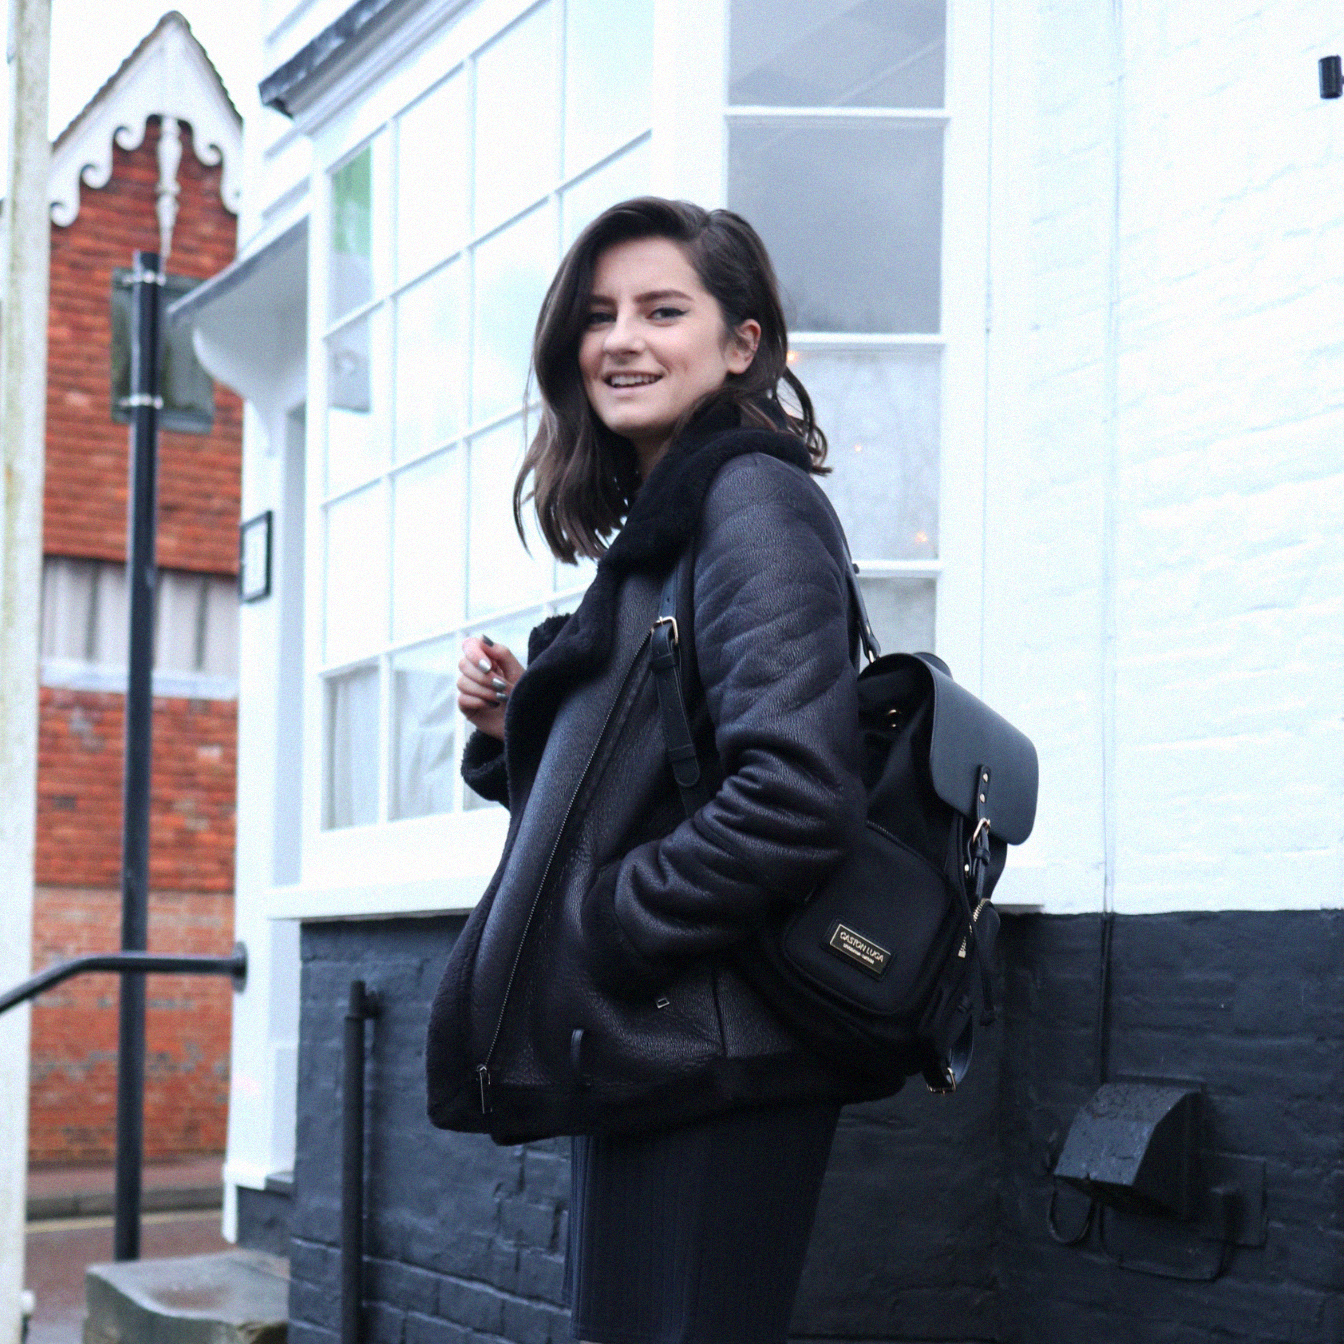 girl wearing all black outfit with gaston luga bag